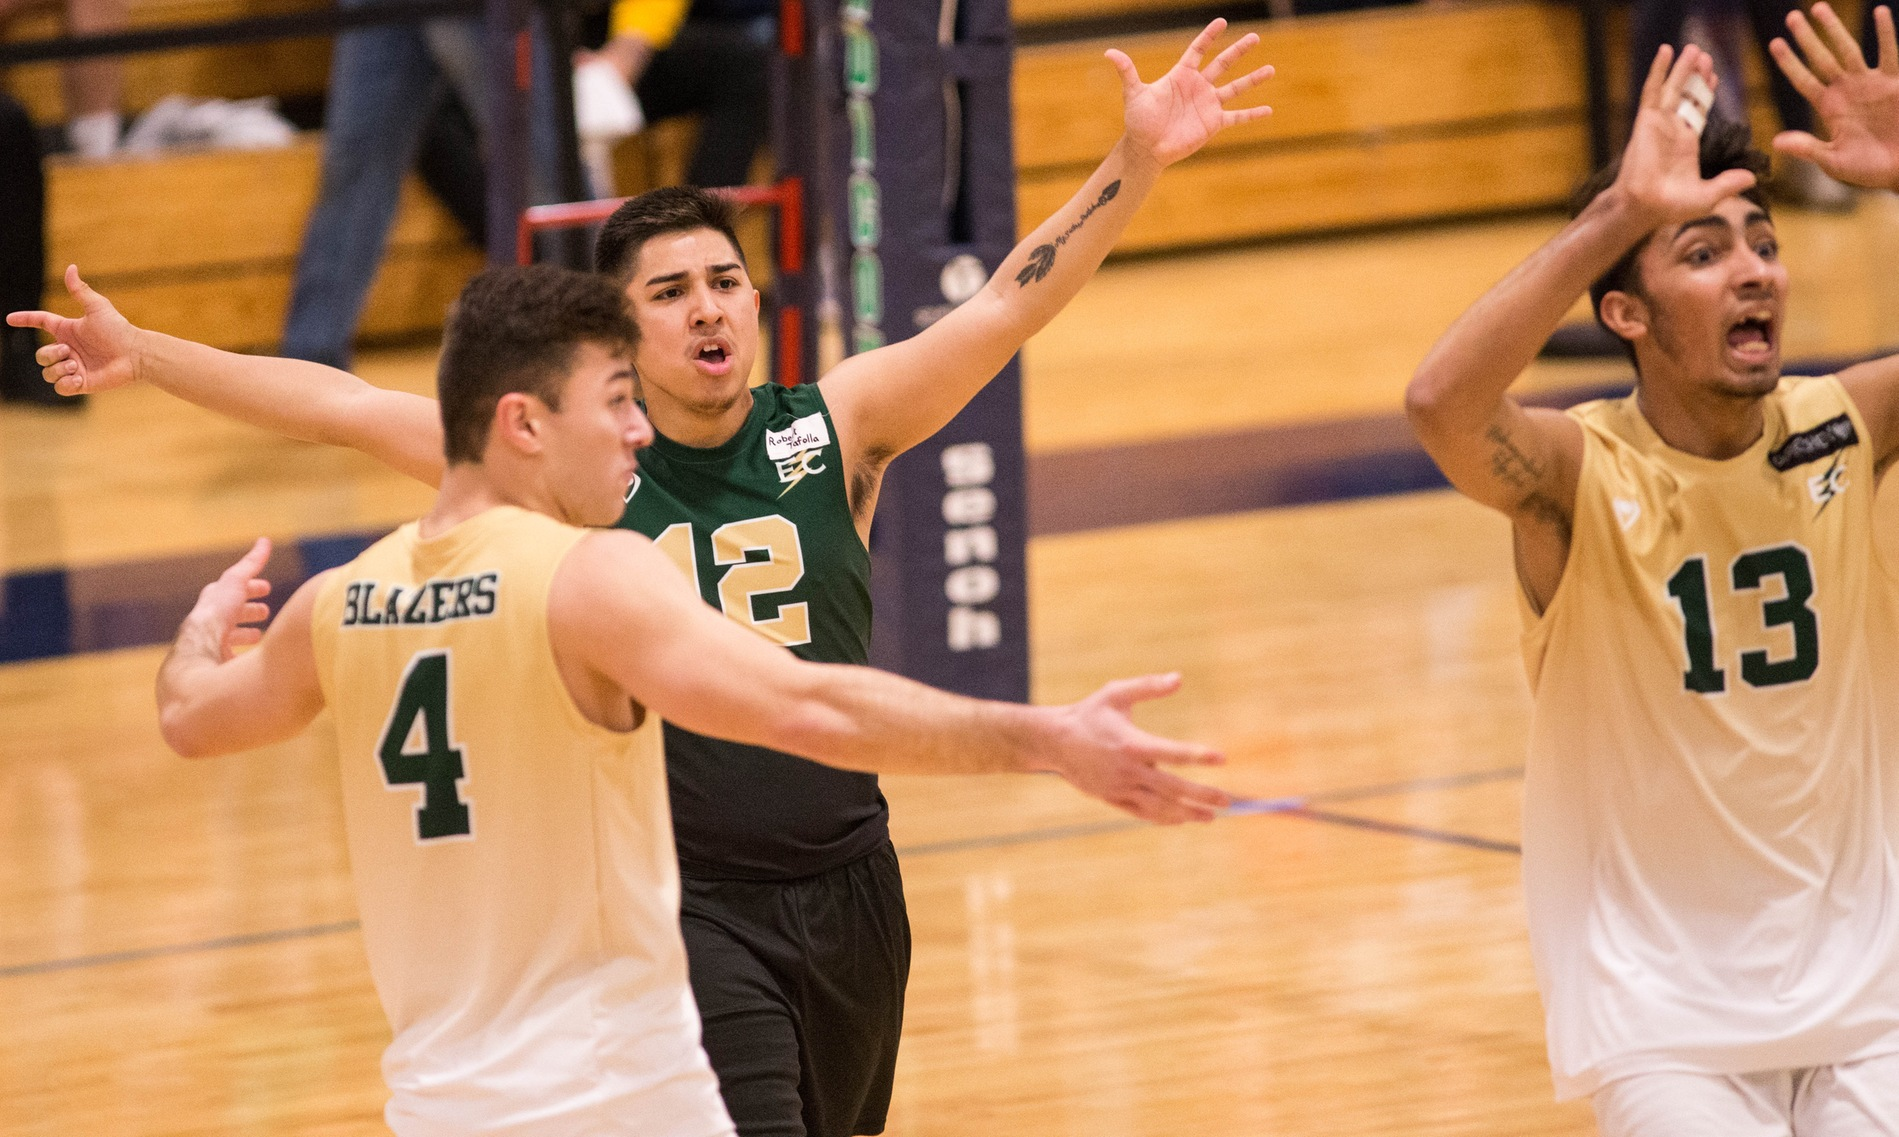 Blazer Volleyball Makes It Four Wins In A Row